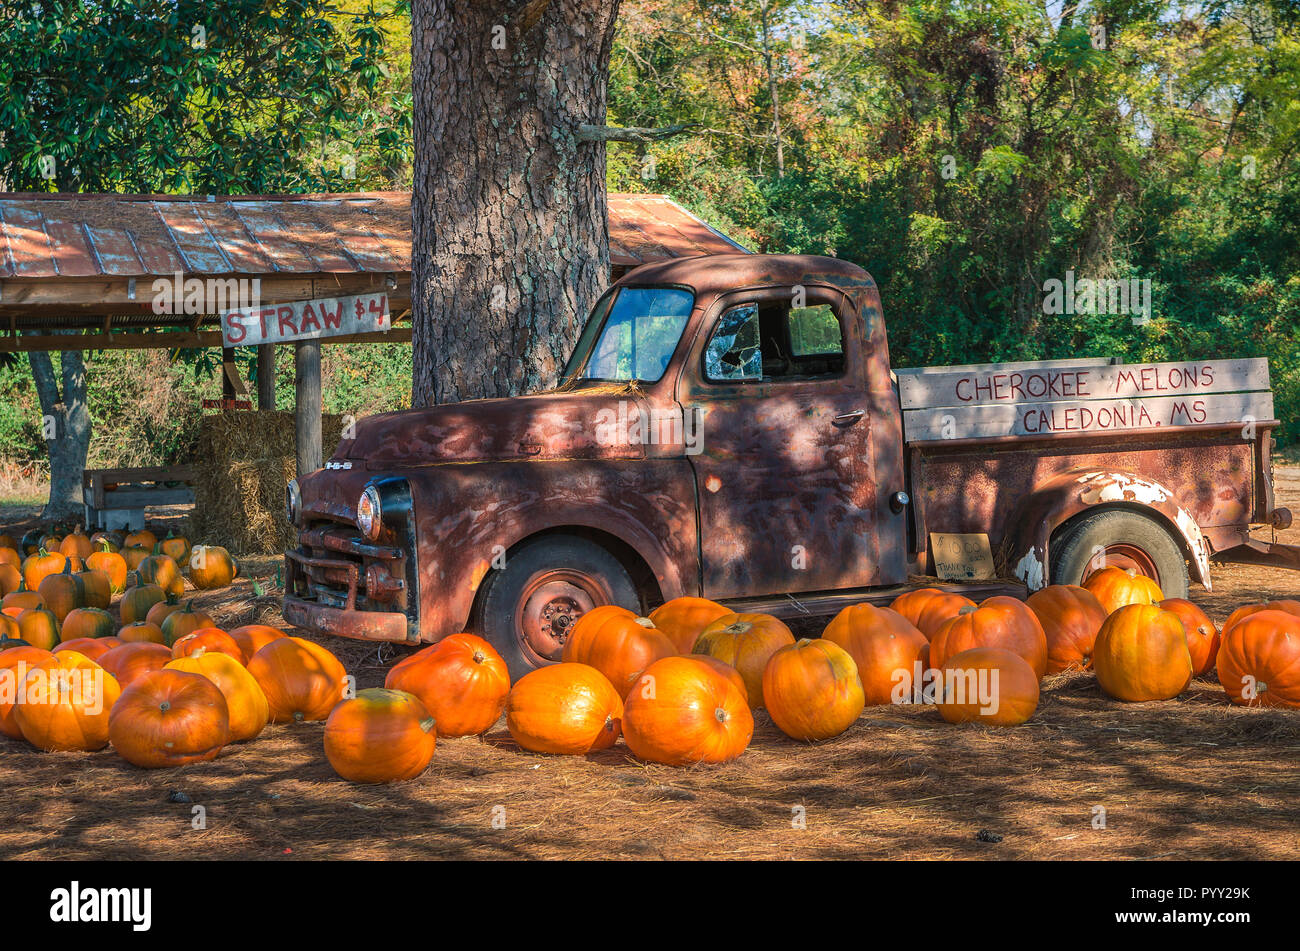 Pumpkins are scattered across a bed of pine straw, lending a seasonal touch, October 29, 2011, in Caledonia, Mississippi. Stock Photo